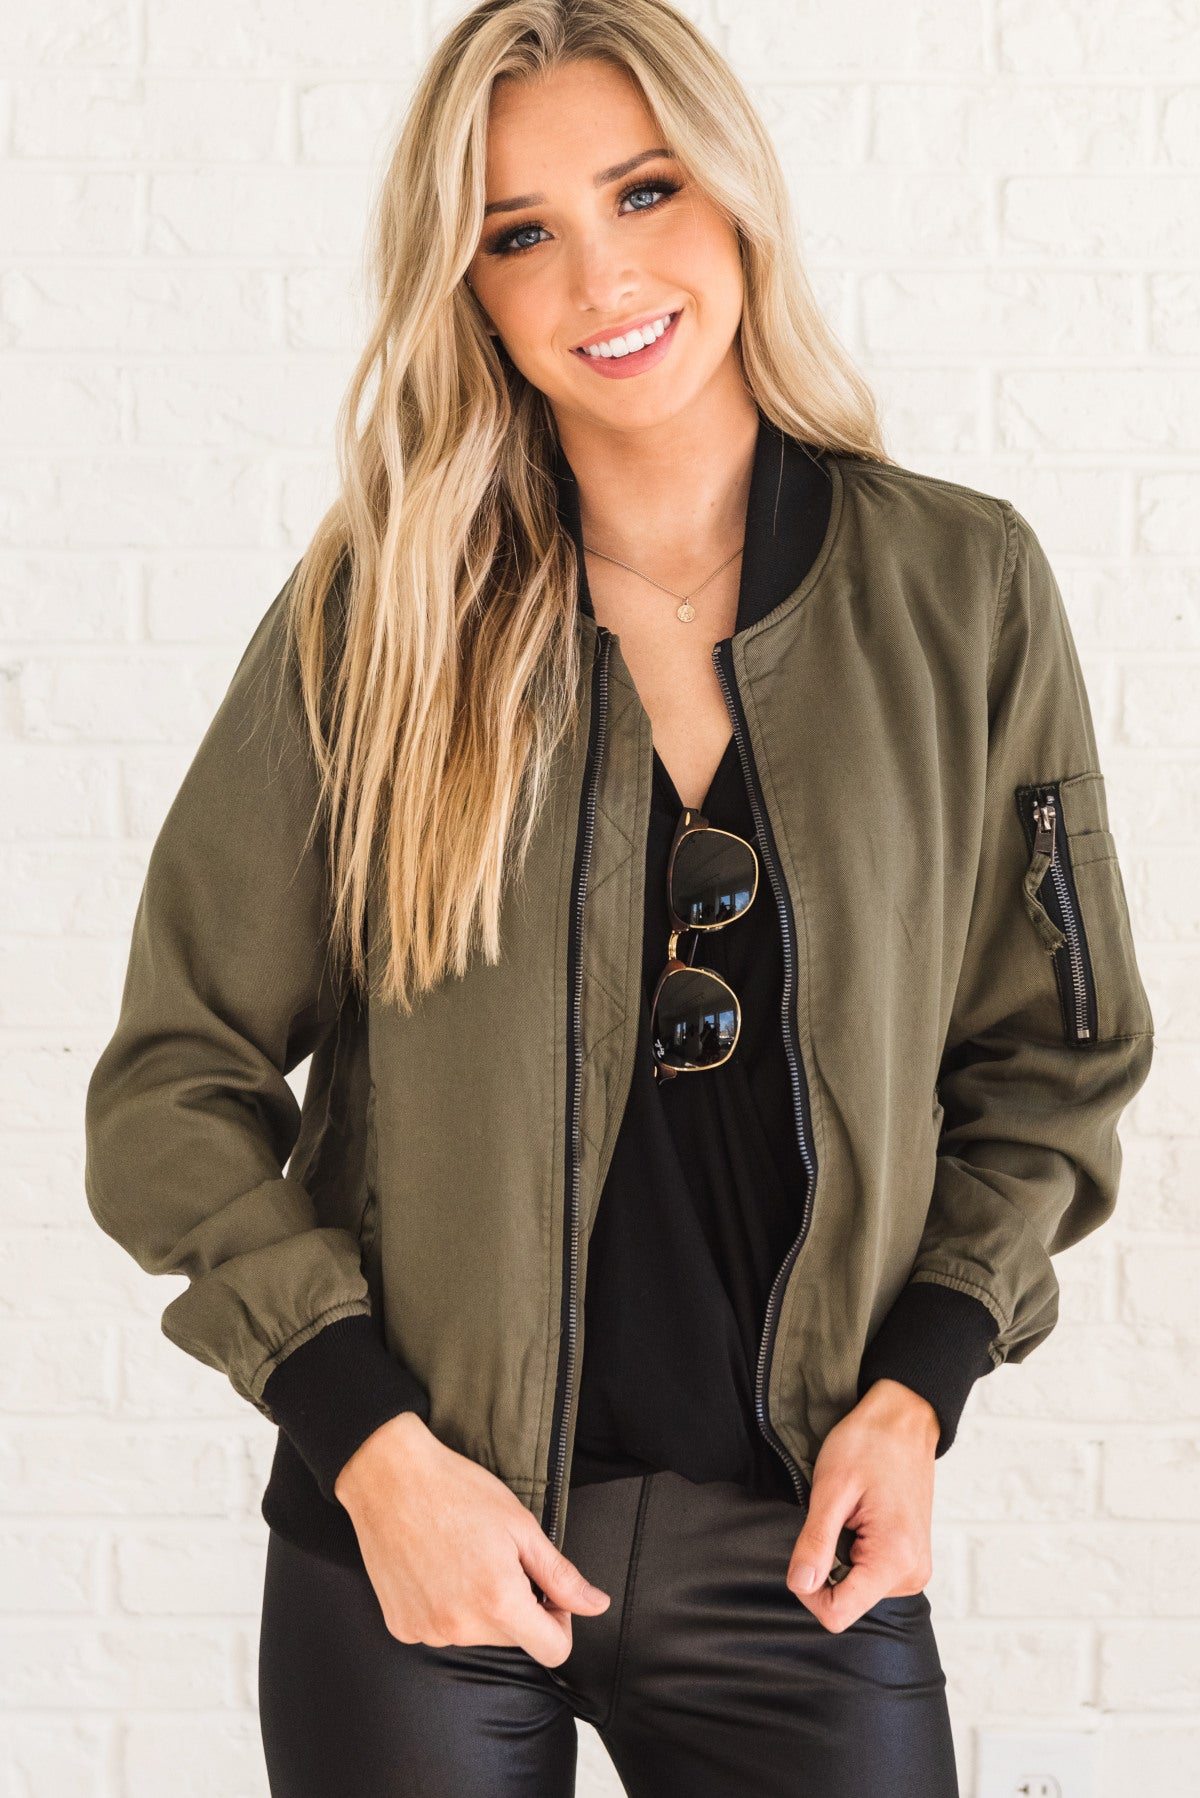 Olive Green and Black Boutique Bomber Jackets for Women